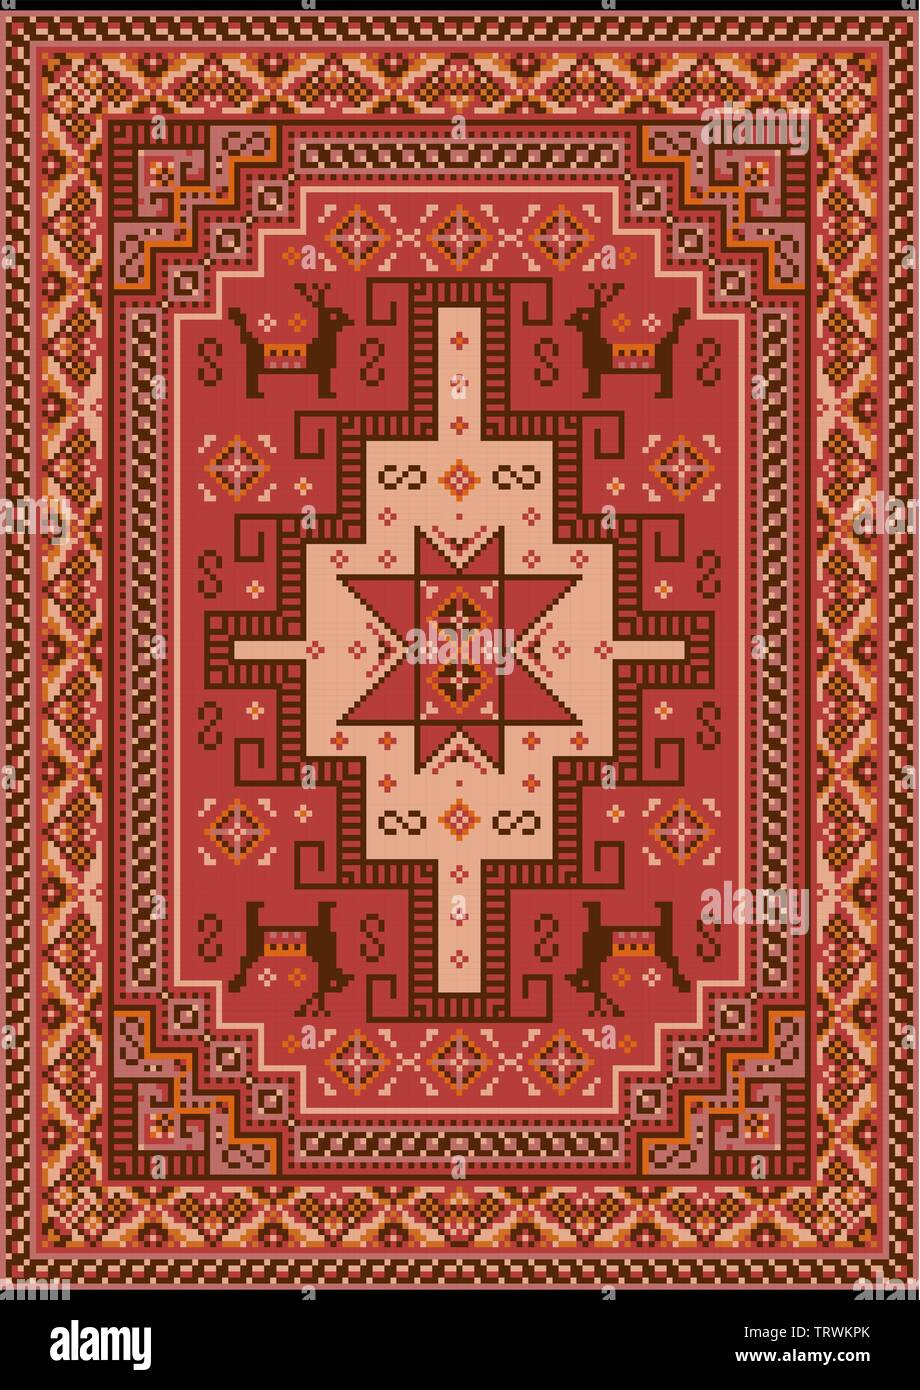 Luxury vintage oriental carpet with red, mauve,brown, beige and orange shades on black background - Stock Image